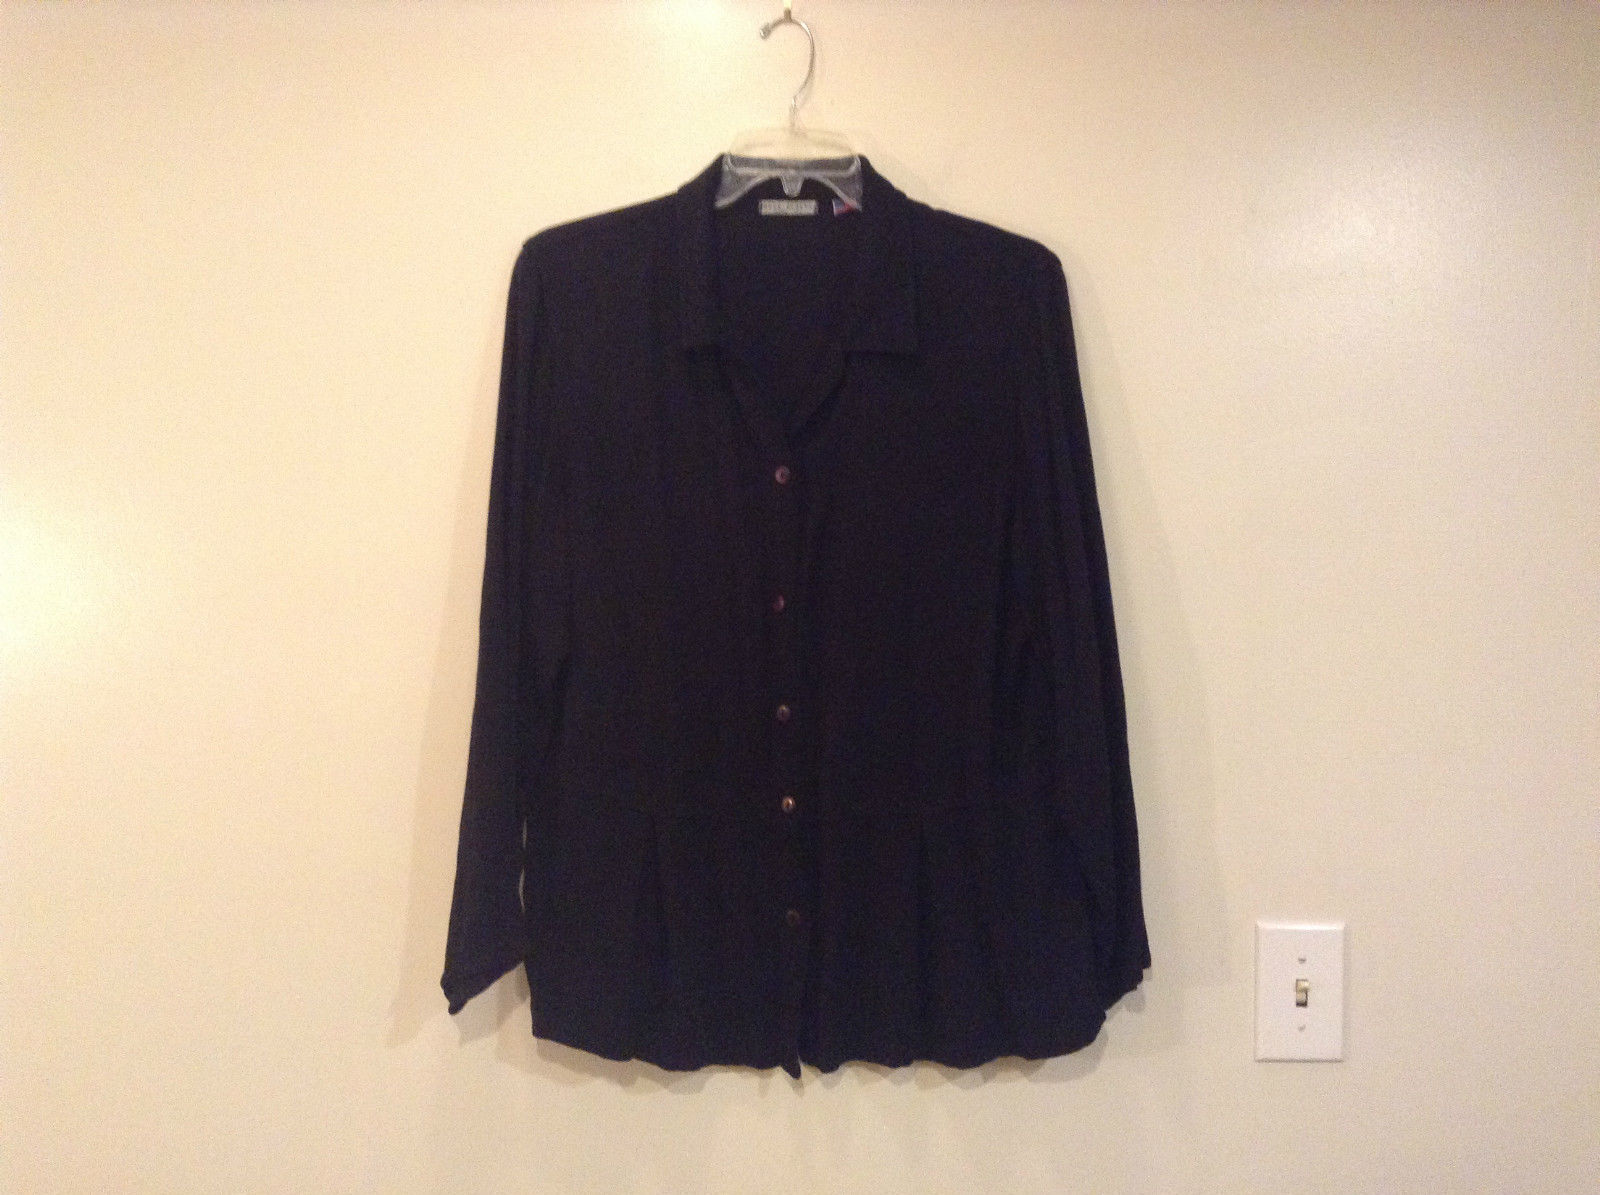 Russ Berens Black Long Sleeve V Neck Button Up Shirt Pleats Down Front Size XL